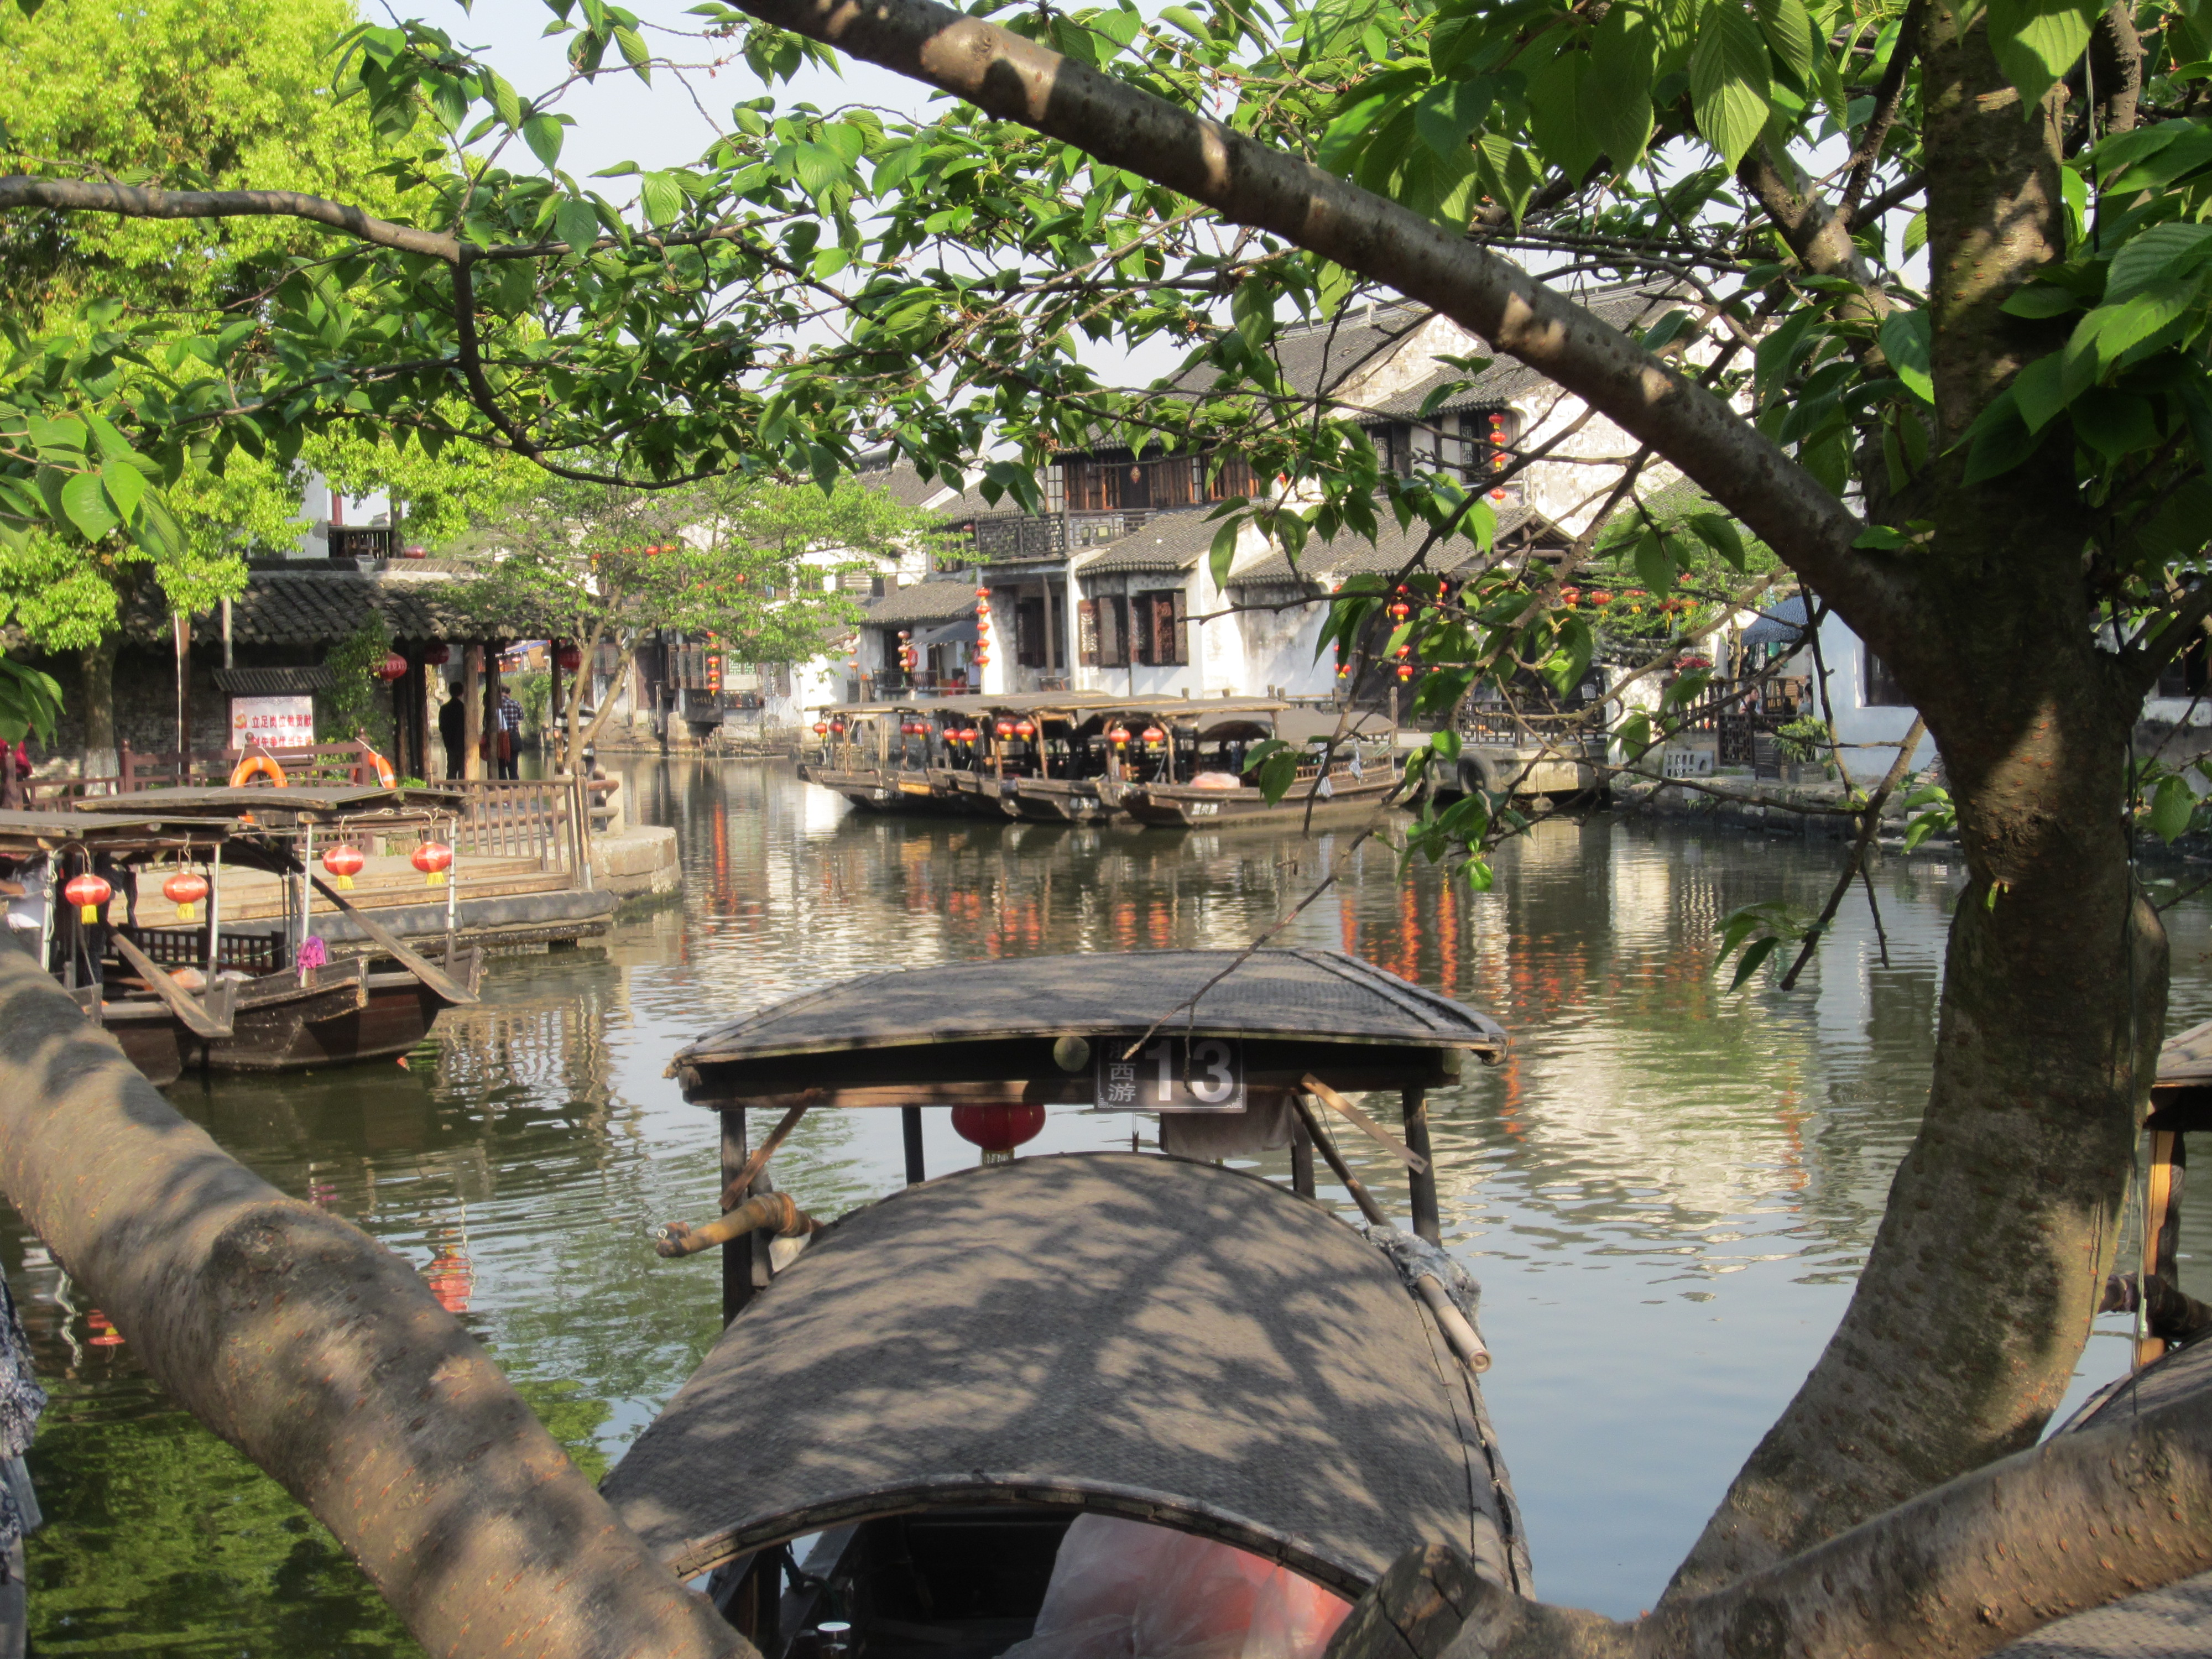 Xitang Ancient Town China  city pictures gallery : Xitang, a water town that retains much of its ancient character